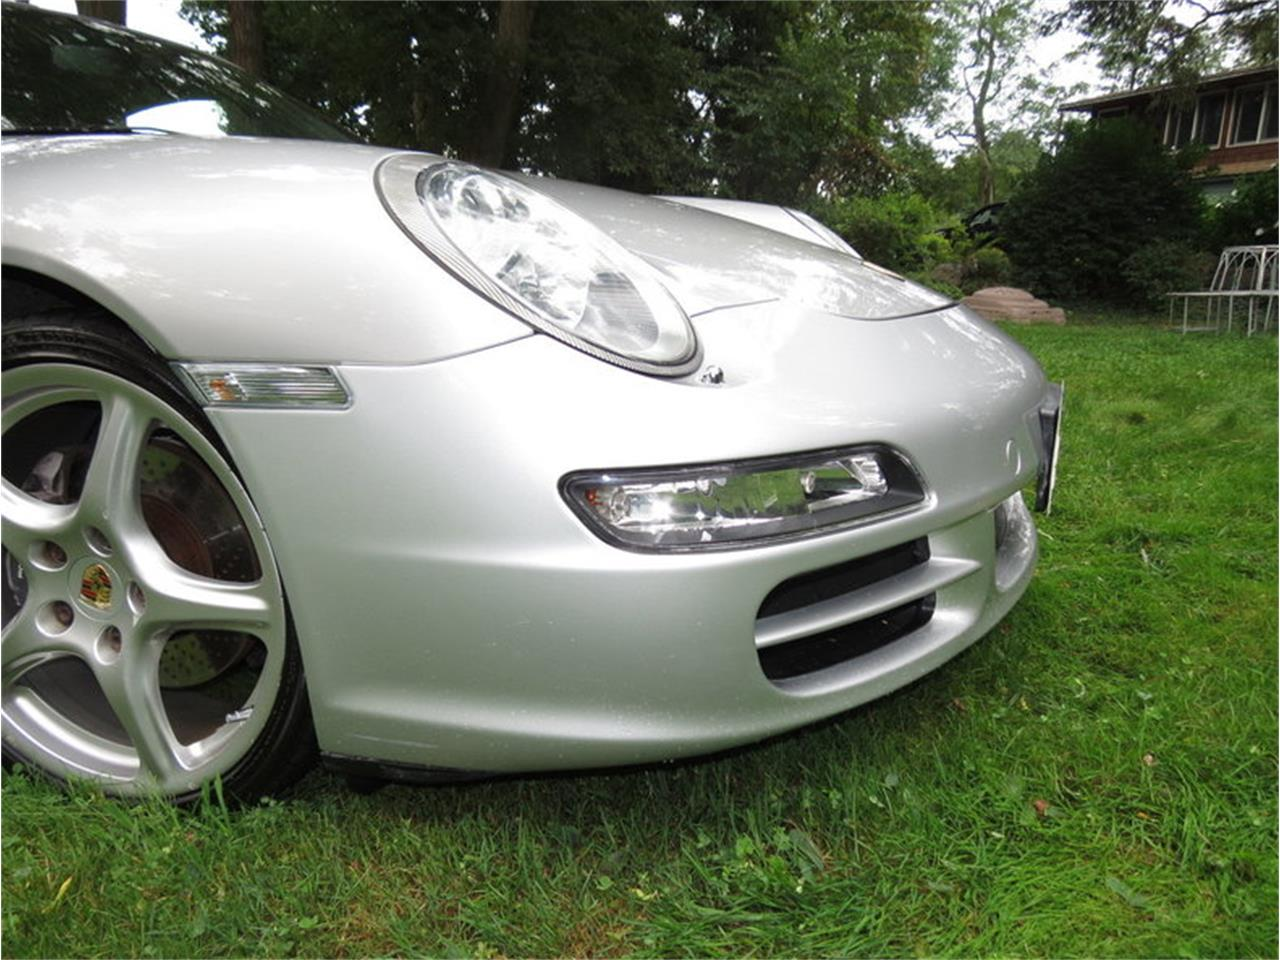 Large Picture of 2005 Porsche 911 Carrera located in Massachusetts - $29,950.00 Offered by Silverstone Motorcars - JD2Q